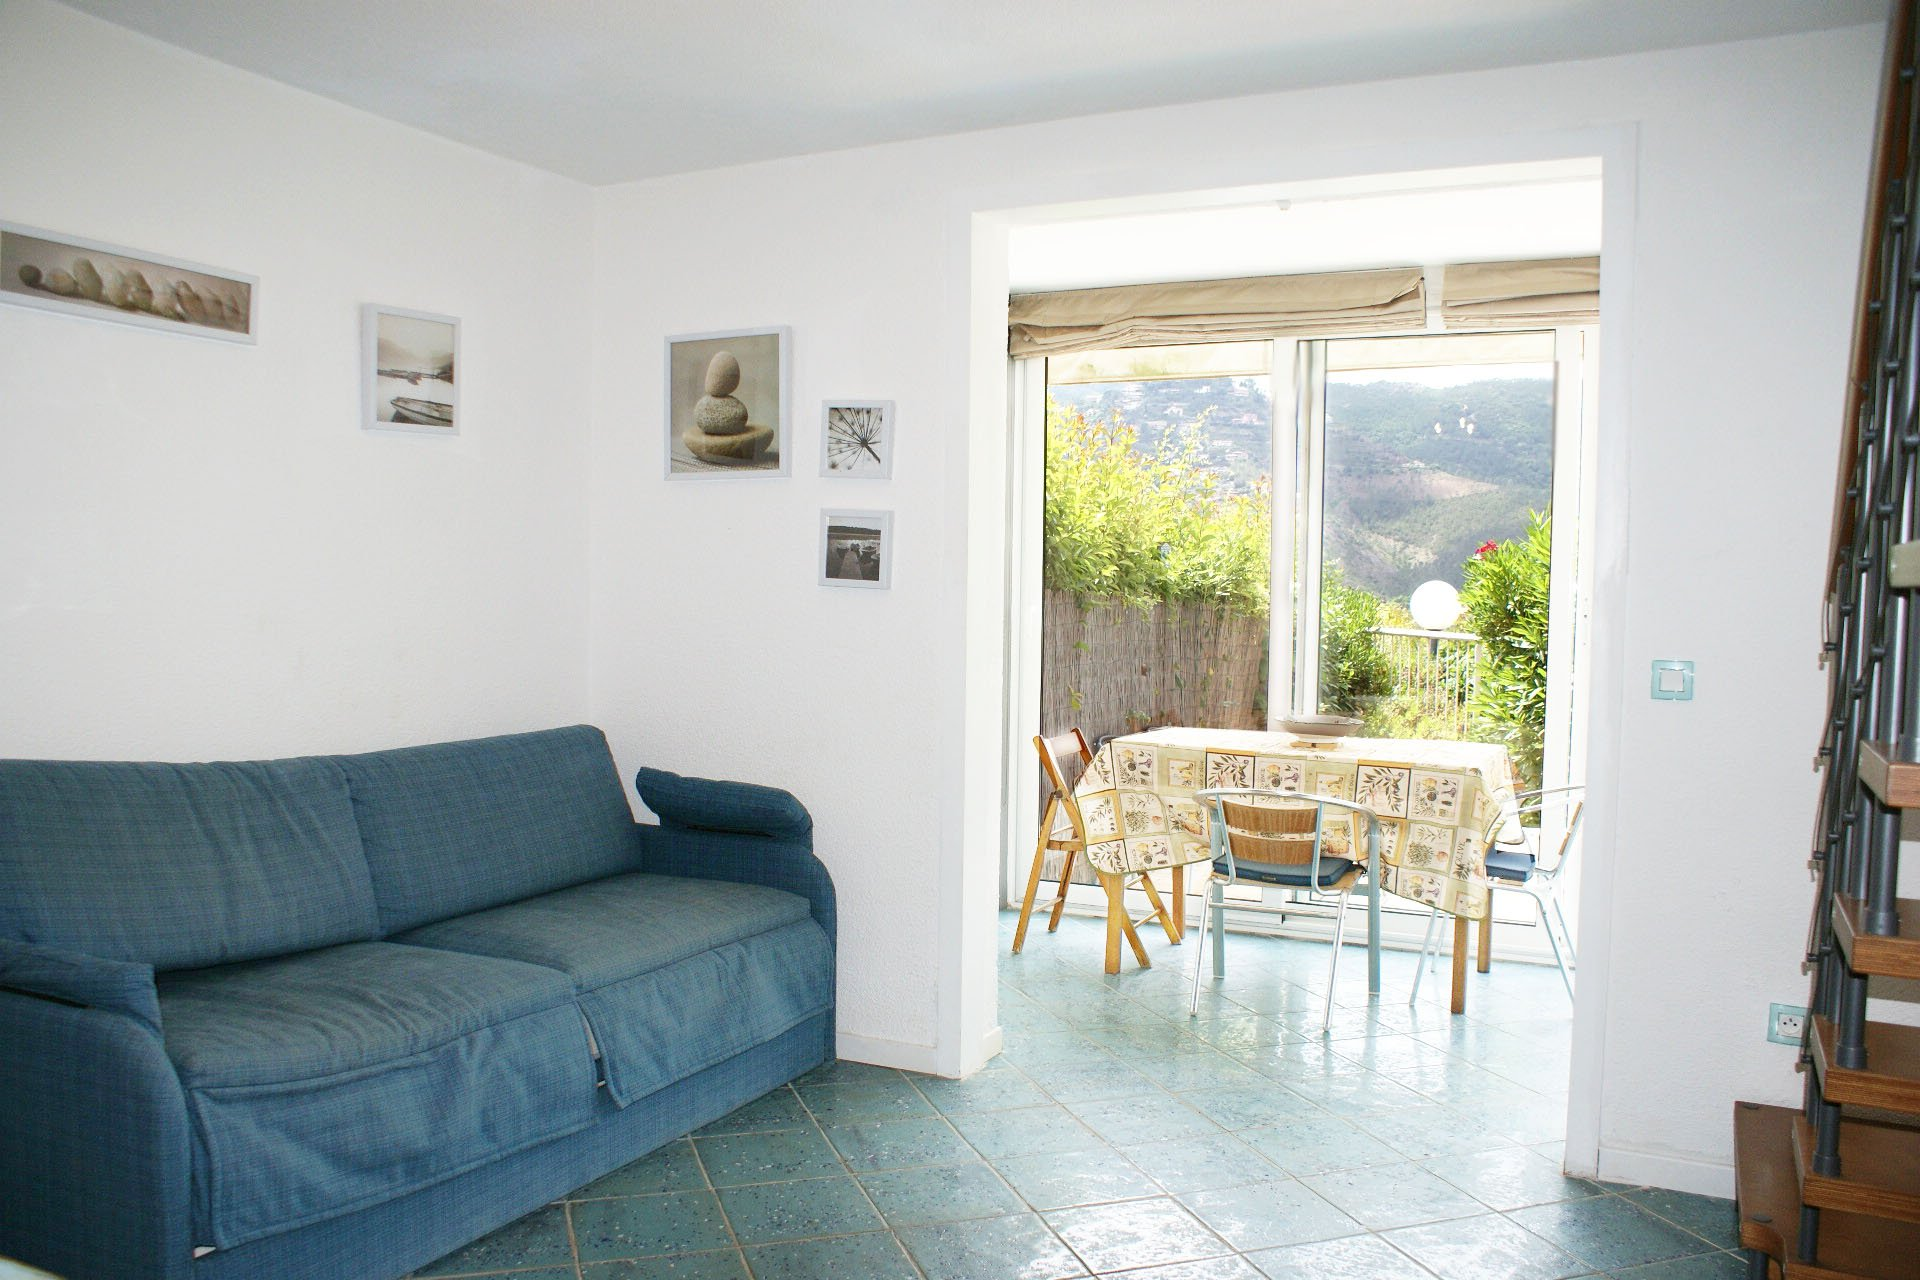 2 bedrooms semi-detached house with beautiful sea view and garage